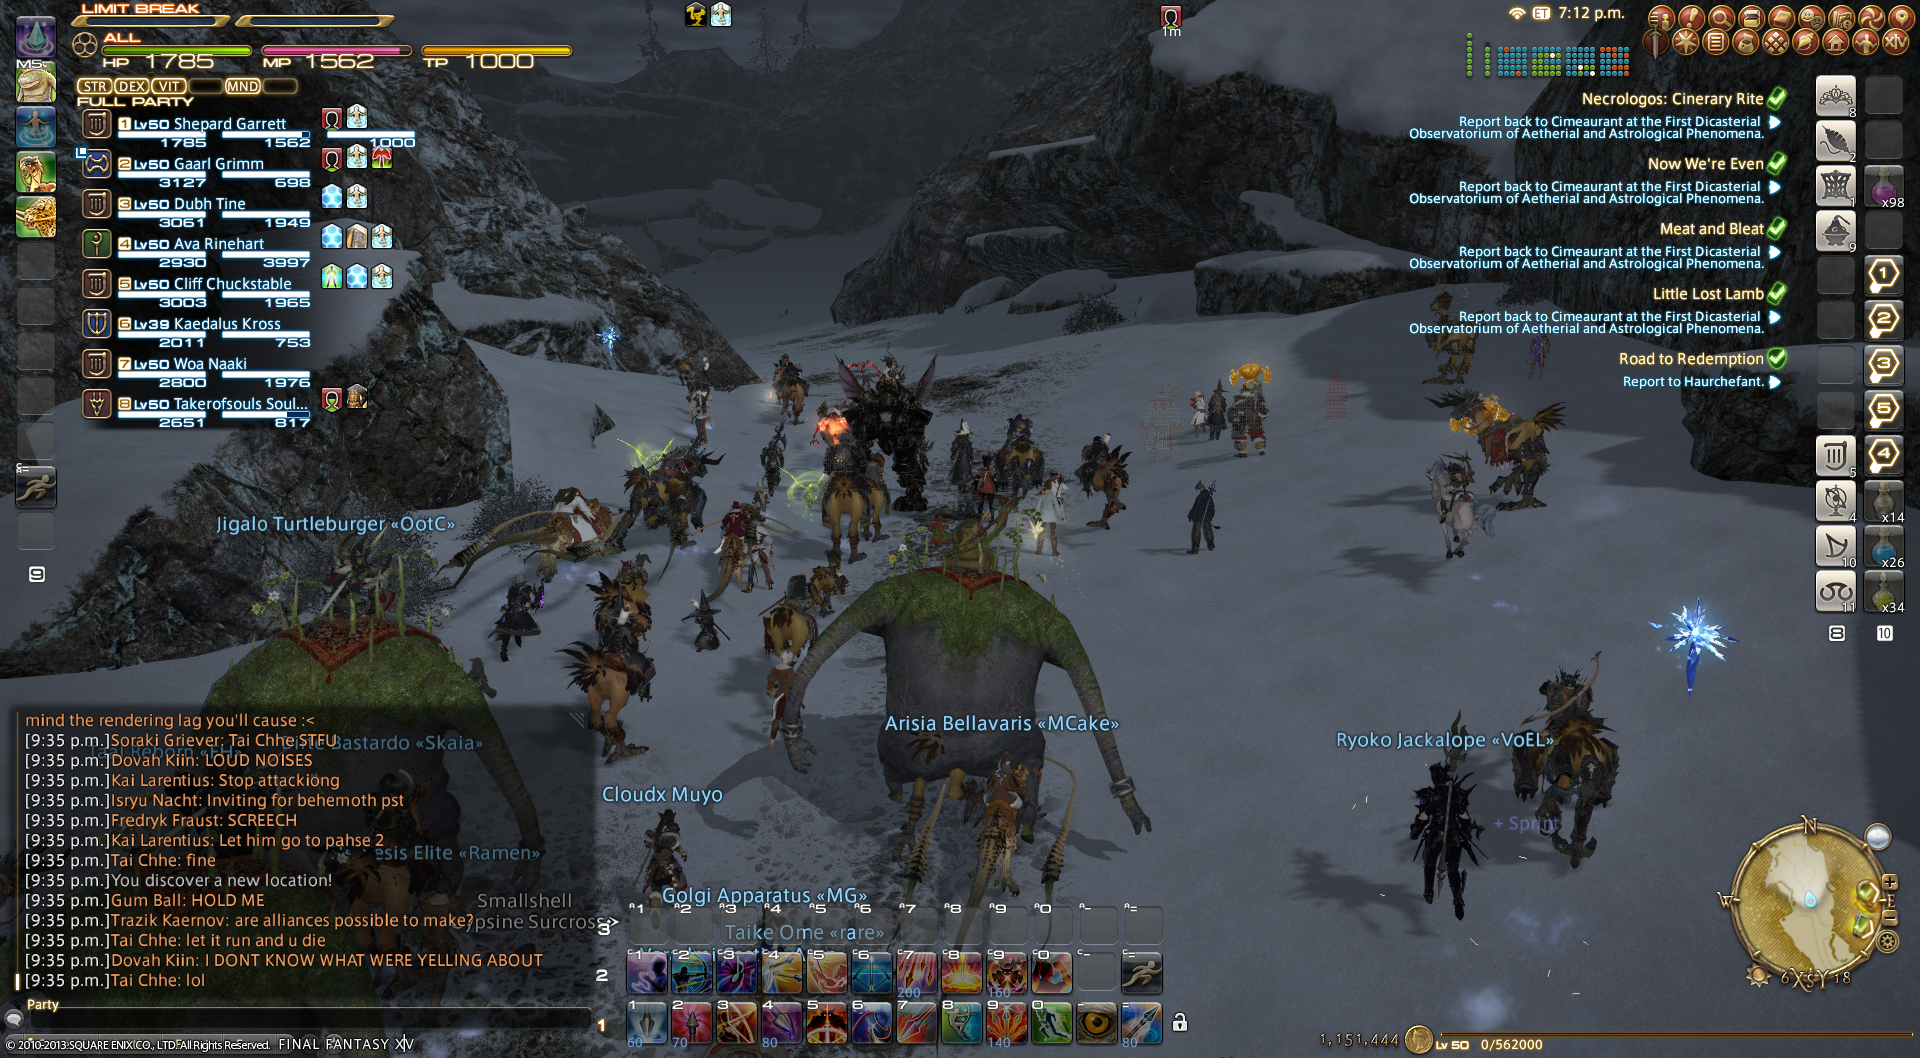 shepardg ffxiv queue matter high realization letting that bullshit anyone number does waves random your points dont made everything fates where weve been queues odinbehemoth have large during come